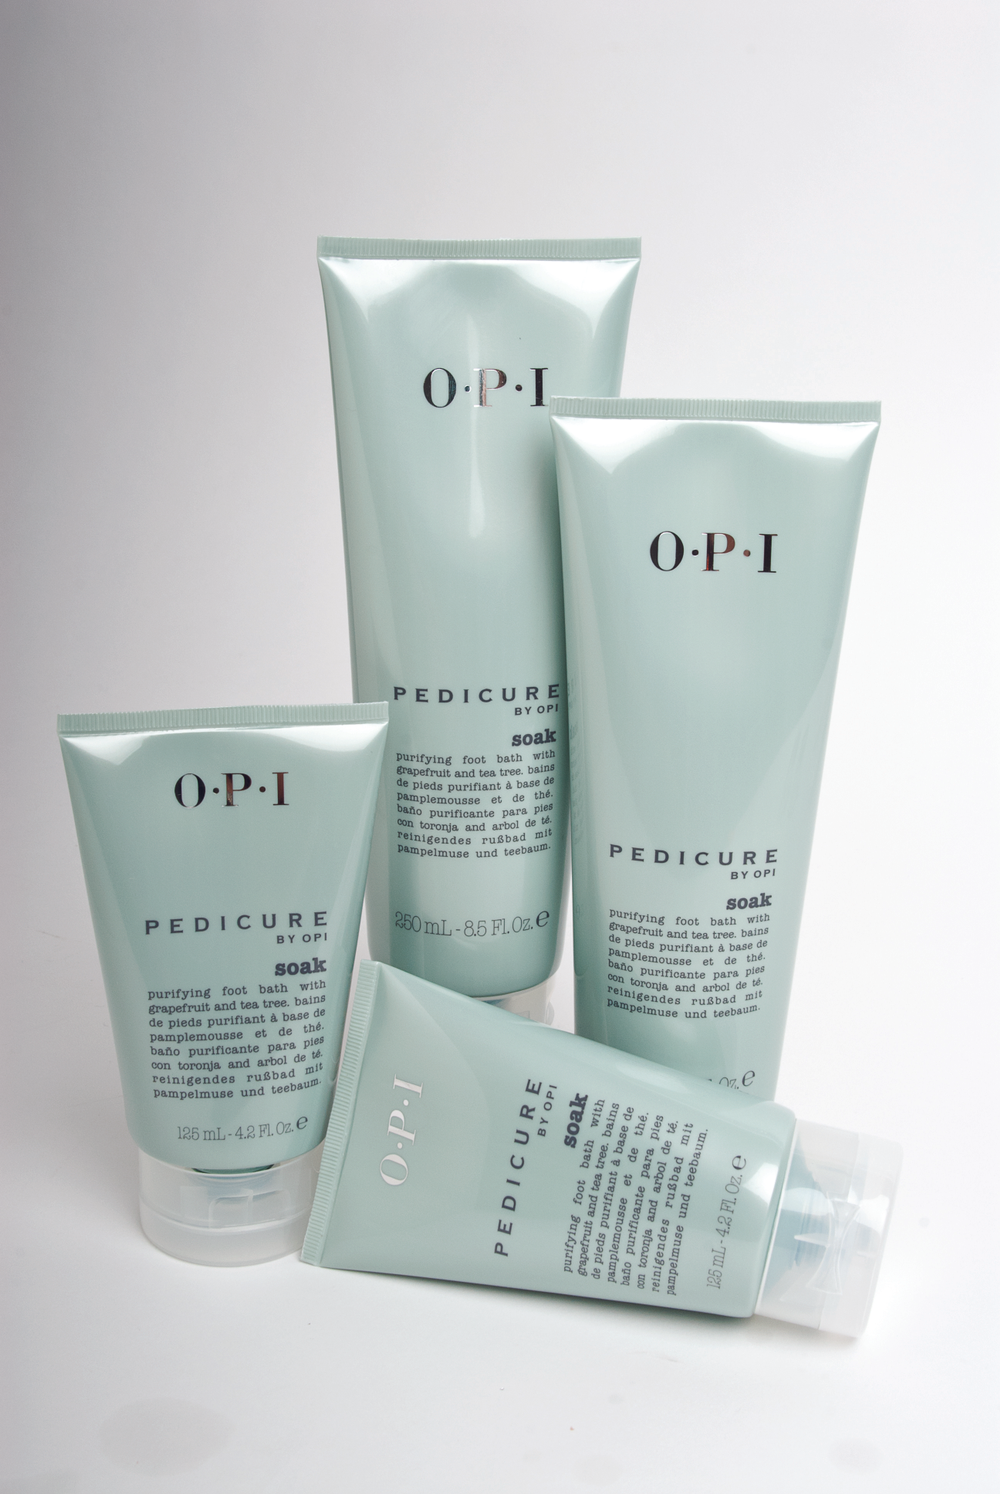 """<p><a href=""""http://www.opi.com/"""">OPI&rsquo;s</a> Pedicure Soak is a purifying foot bath with grapefruit and tea tree oil infused with the aroma of fresh-cut citrus. OPI also has an avocado lipid complex in the formula to thoroughly cleanse and soften feet.</p>"""